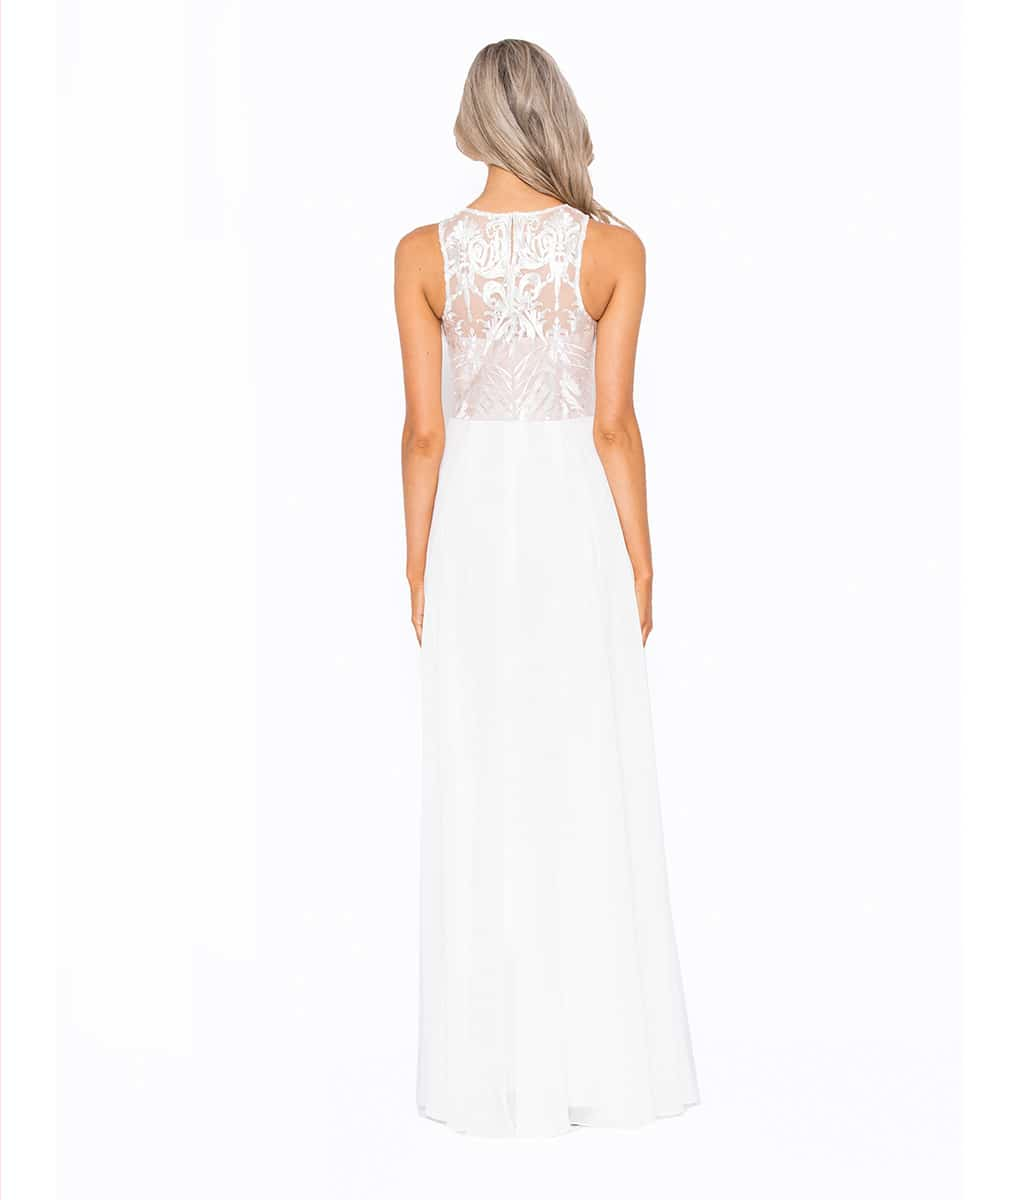 Alila-White-Bridal-Style-Debs-Gown-Bariano